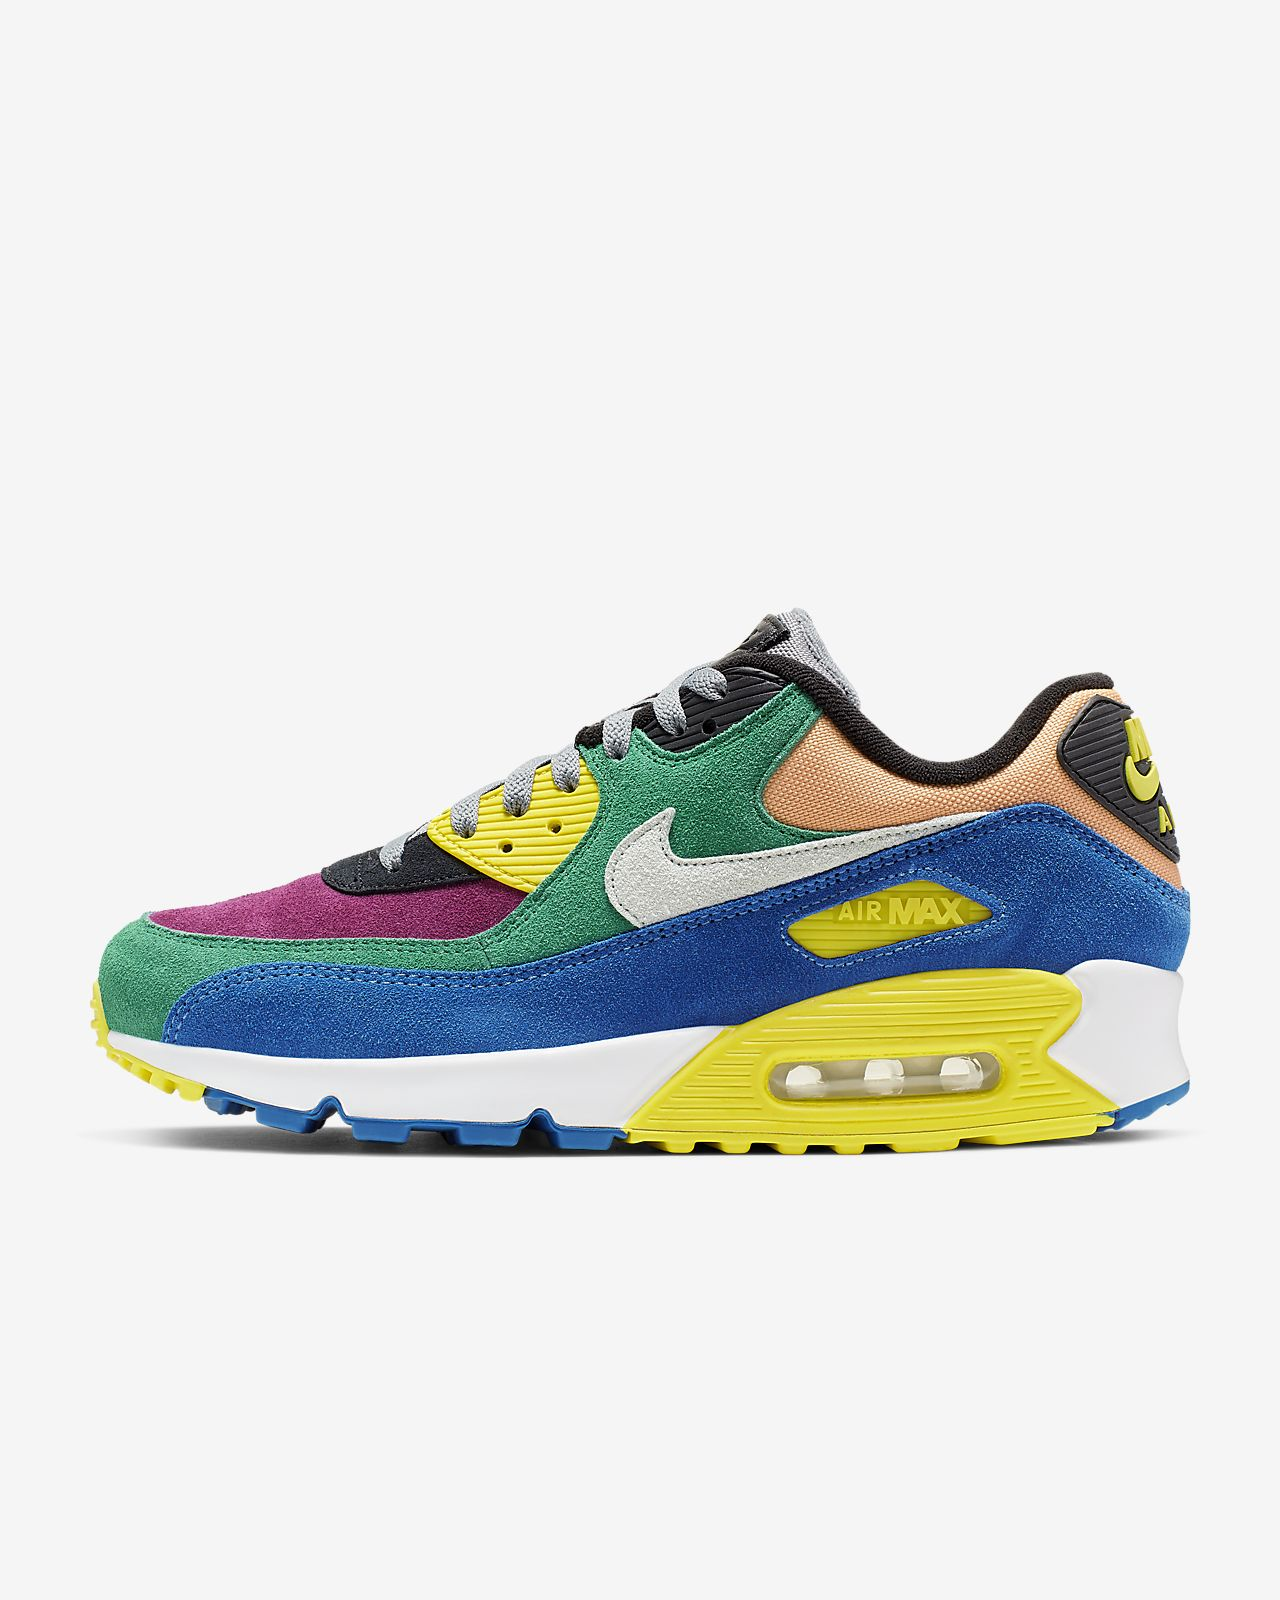 official photos 20ea9 04f44 Nike Air Max 90 Men's Shoe